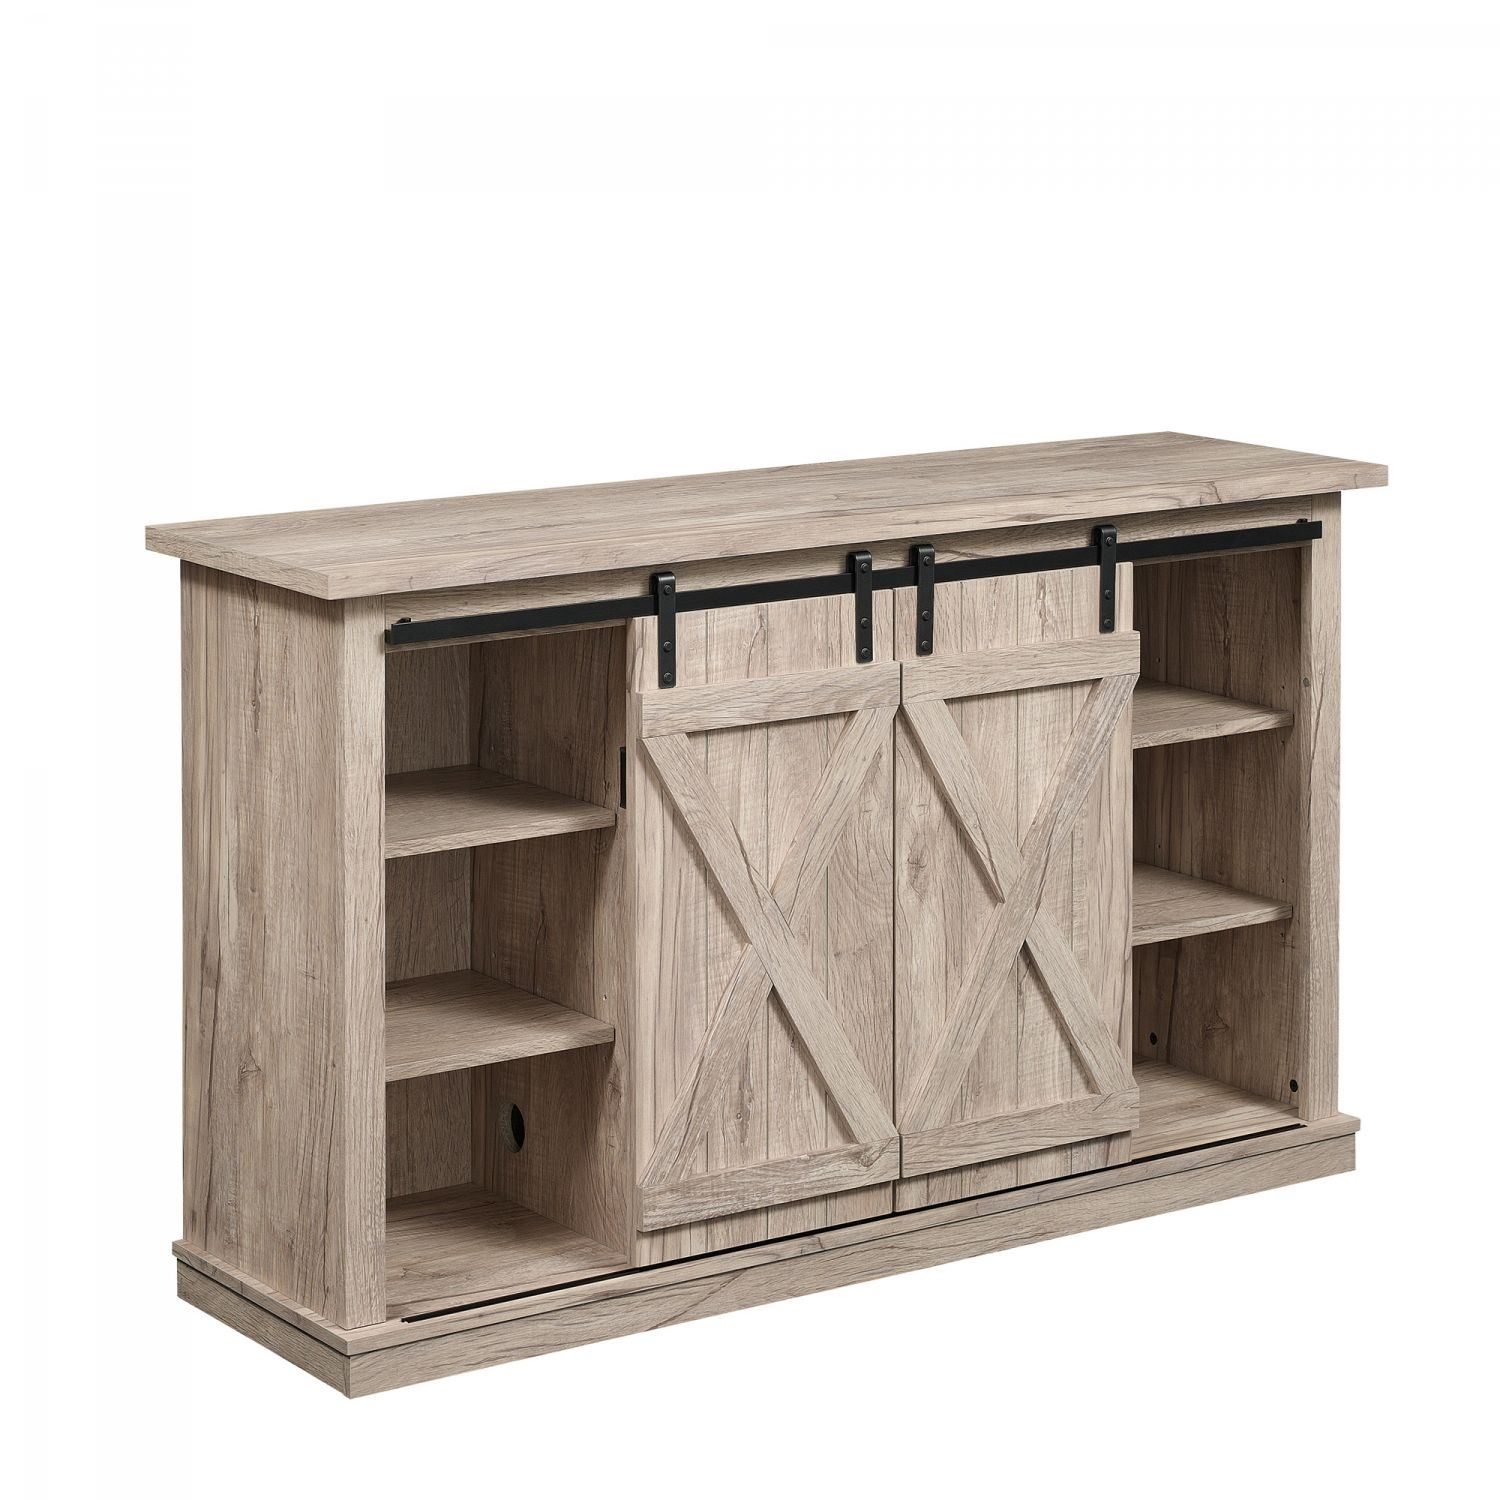 Picture of Cottonwood TV Stand for TVs up to 60 inches *D